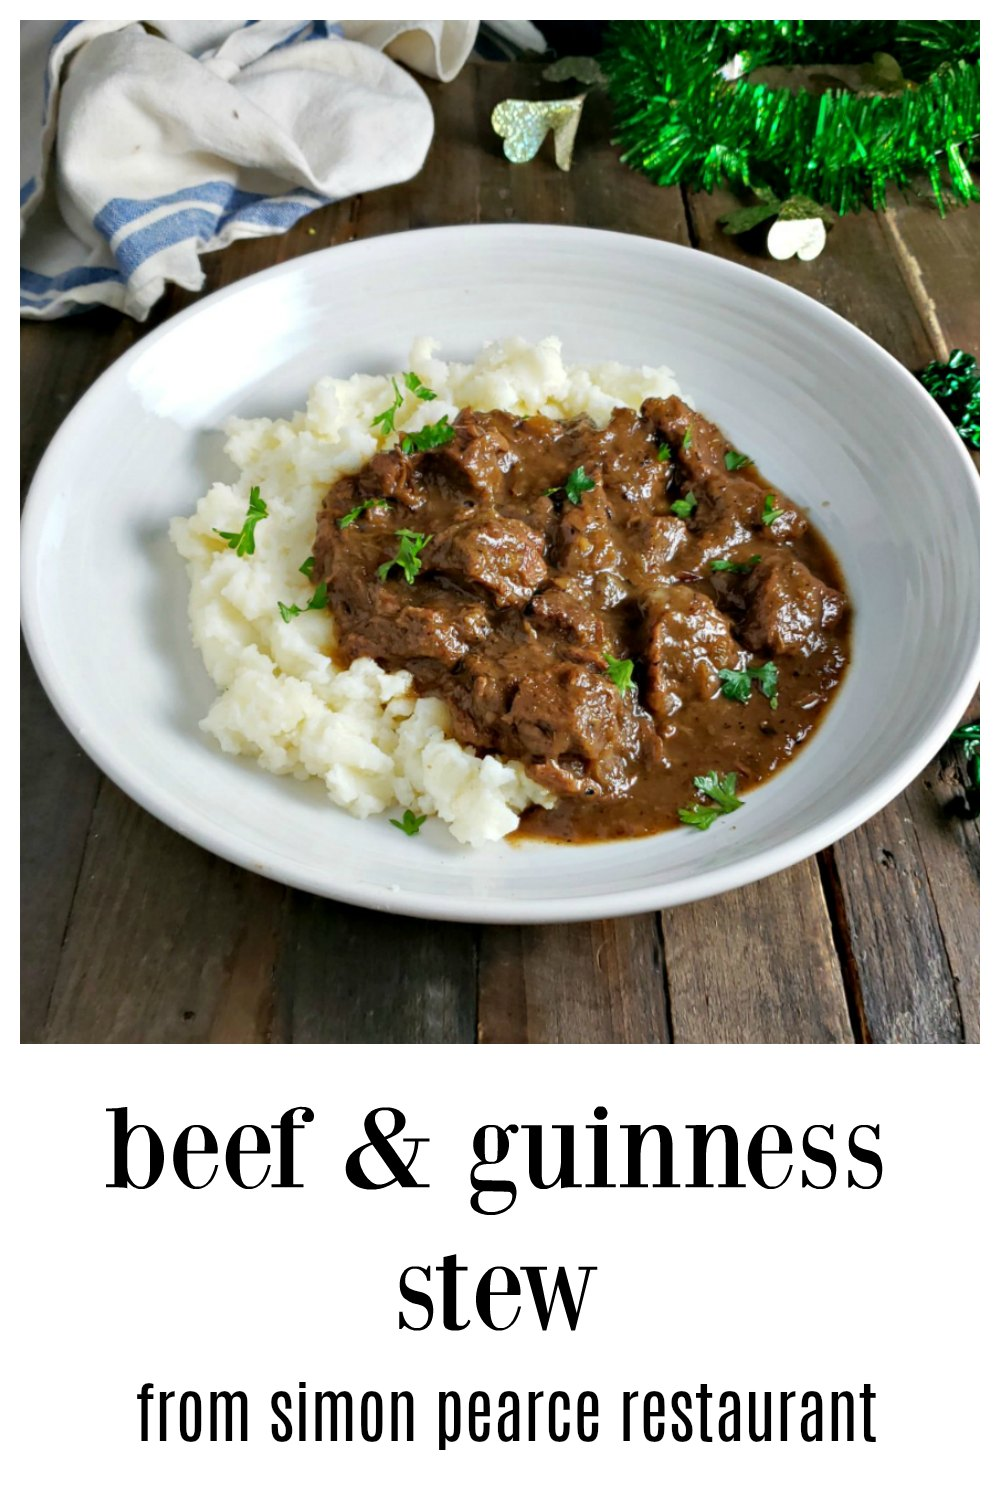 Perfect for St. Paddy's Day or anytime, this Beef Guinness Stew Simon Pearce version is stellar! Serve over mashed for pure comfort or over baked potatoes. #IrishStew #BeefStew #BeefGuinnessStew #IrishRecipes #MillAtSimonPearce #SimonPearceBeefStew #SimonPearceBeefGuinnessStew #SimonPearceRecipe #StPaddysDayRecipe #StPatricksDayRecipe #StPaddysIrishStew StPaddysBeefSTew #StPannysGuinnessStew